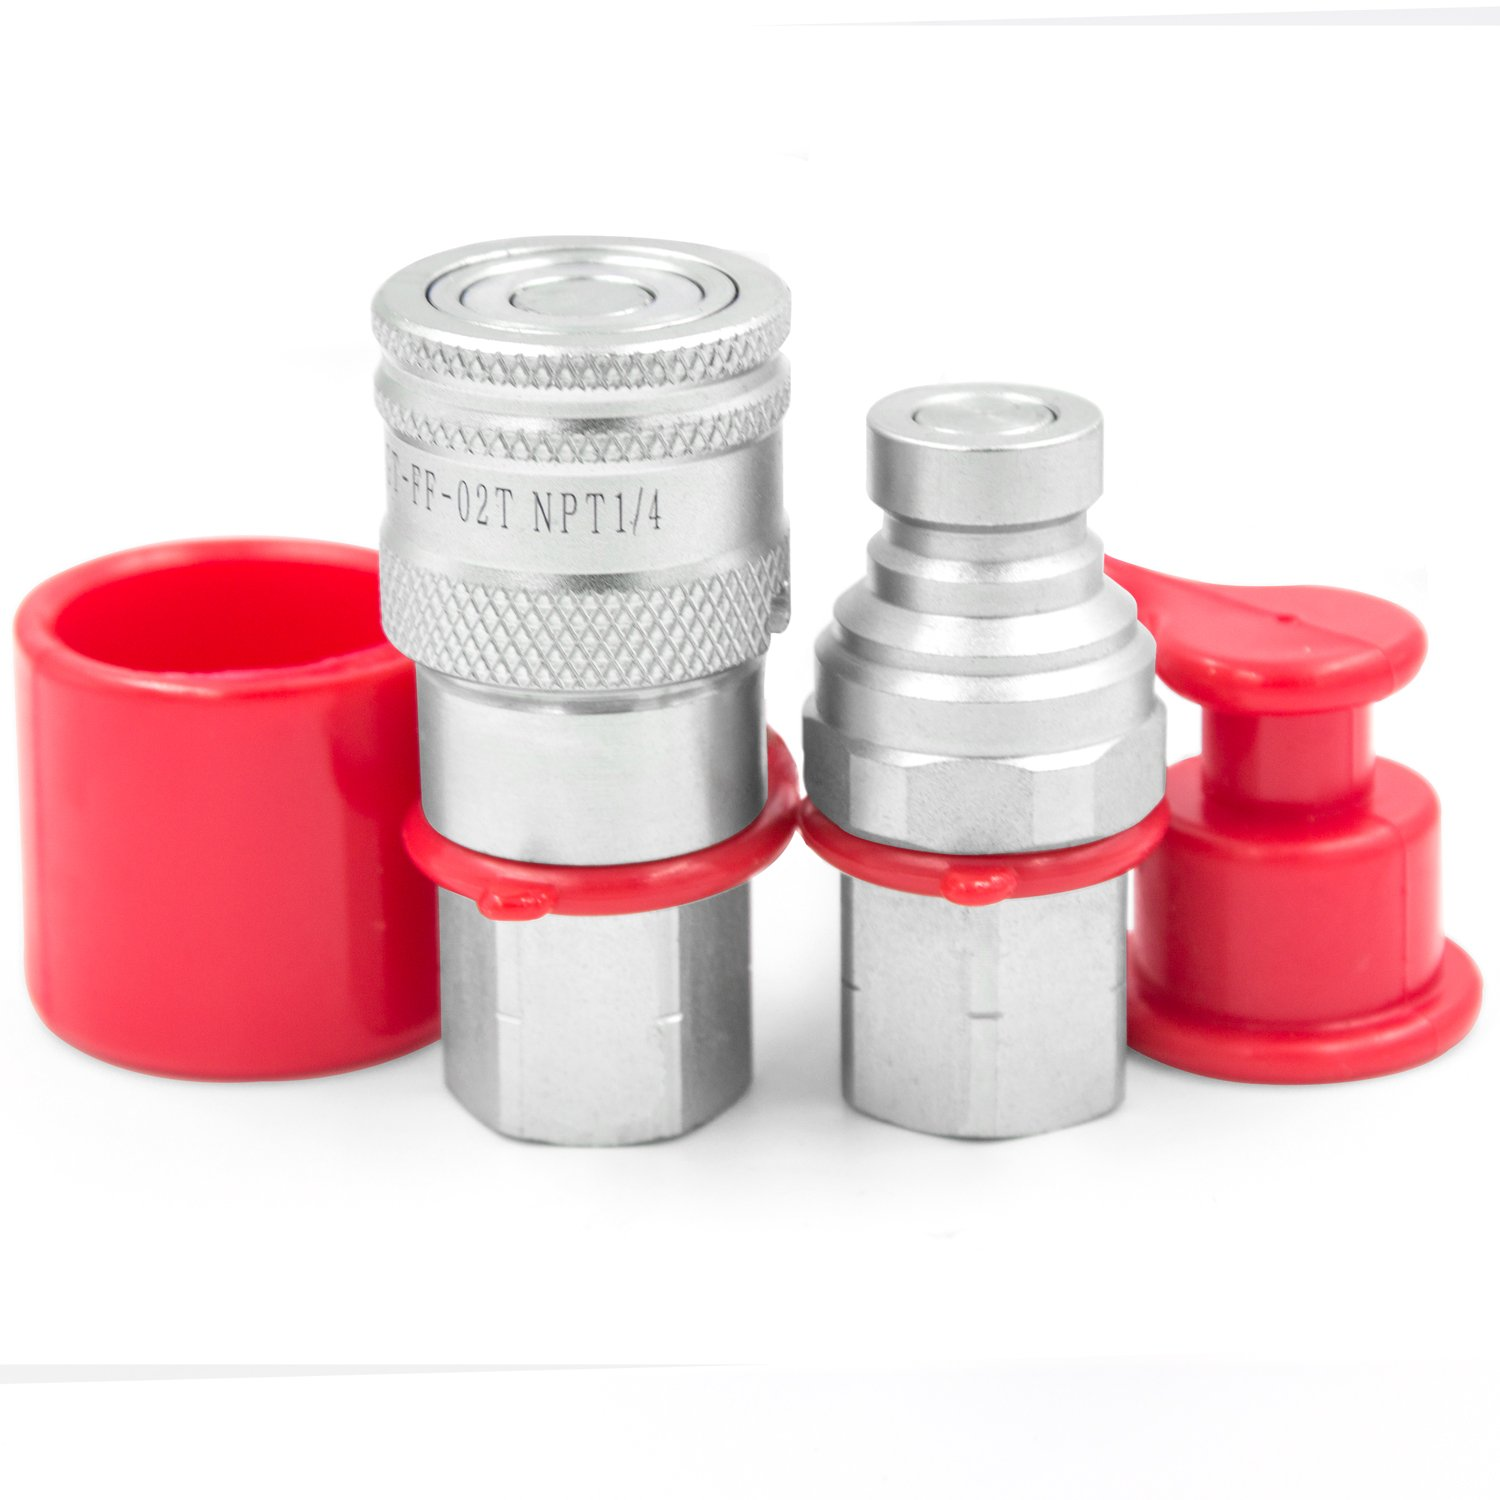 1/4'' NPT Thread 1/4'' Body Size Flat Face Hydraulic Quick Disconnect Coupler Coupling Set with Dust Caps